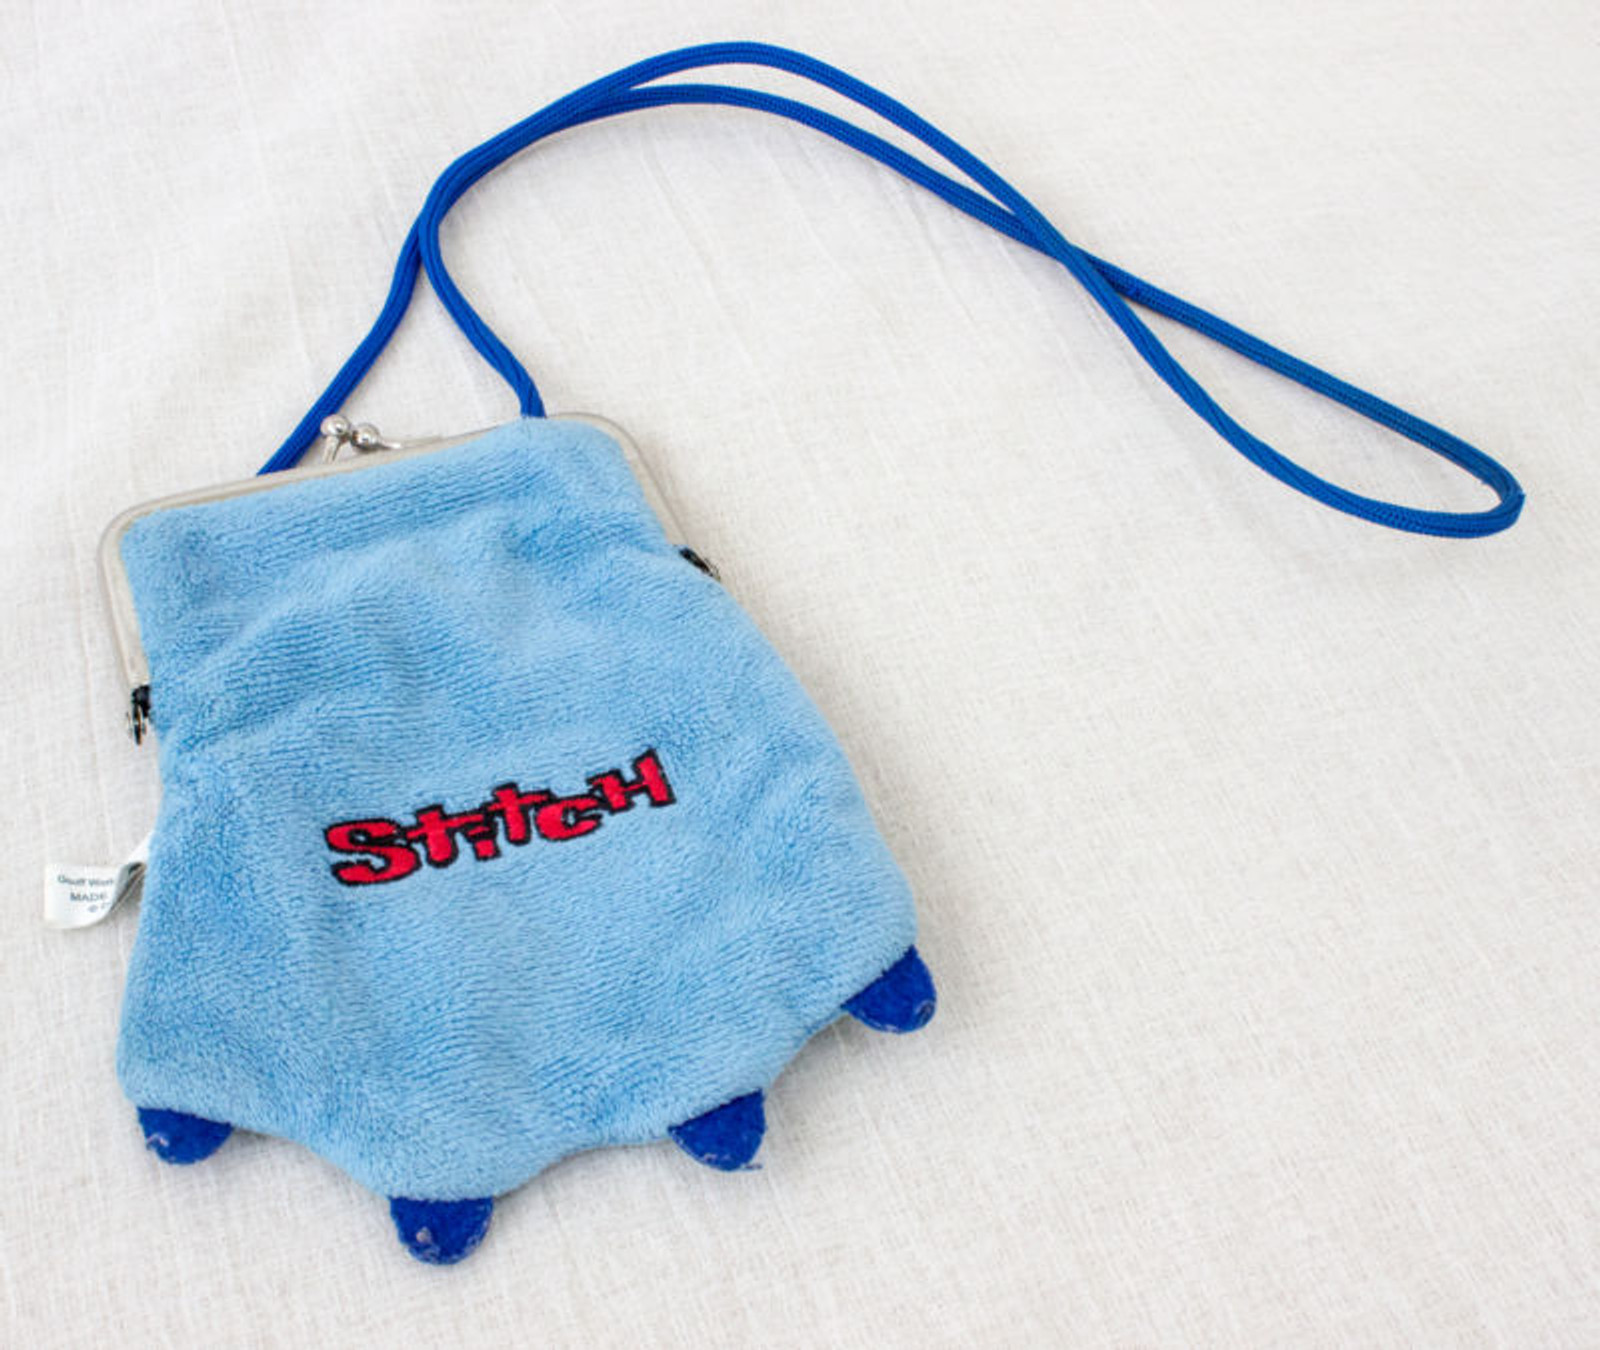 Disney Stitch Japanese Coin Case Bag Sole of the Hand Ver. Banpresto JAPAN ANIME